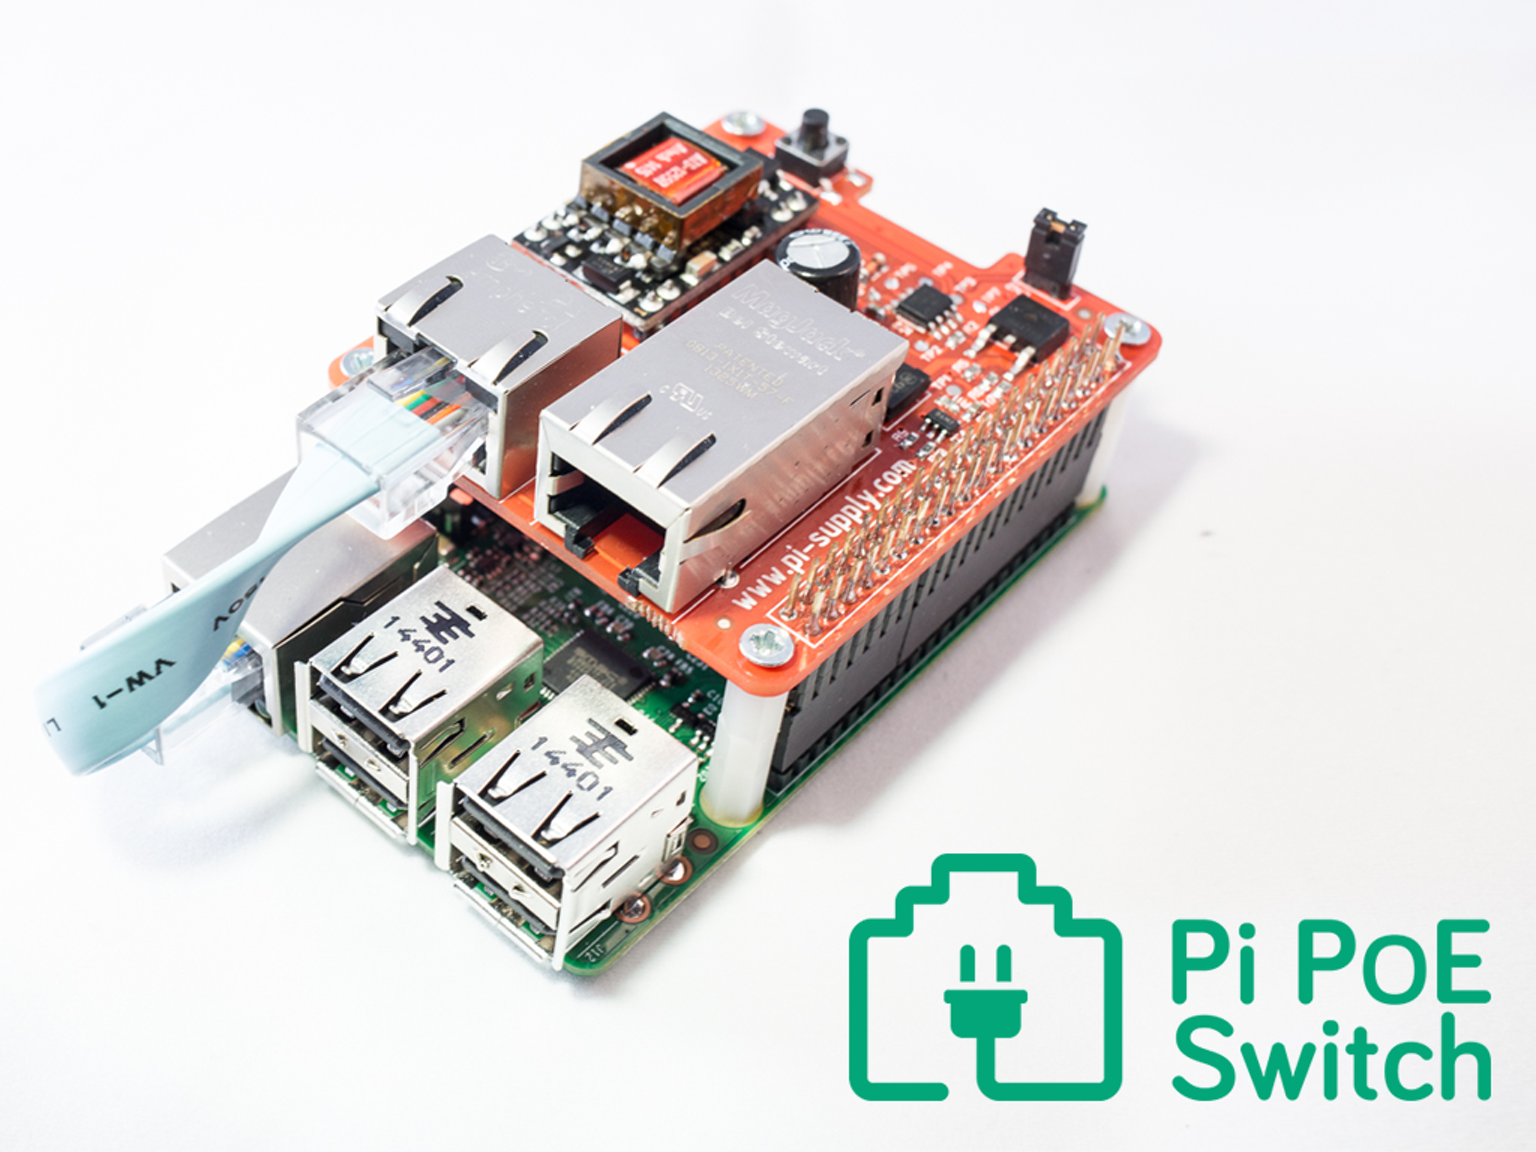 a power over ethernet (poe) add on board (hat) for your raspberry pi